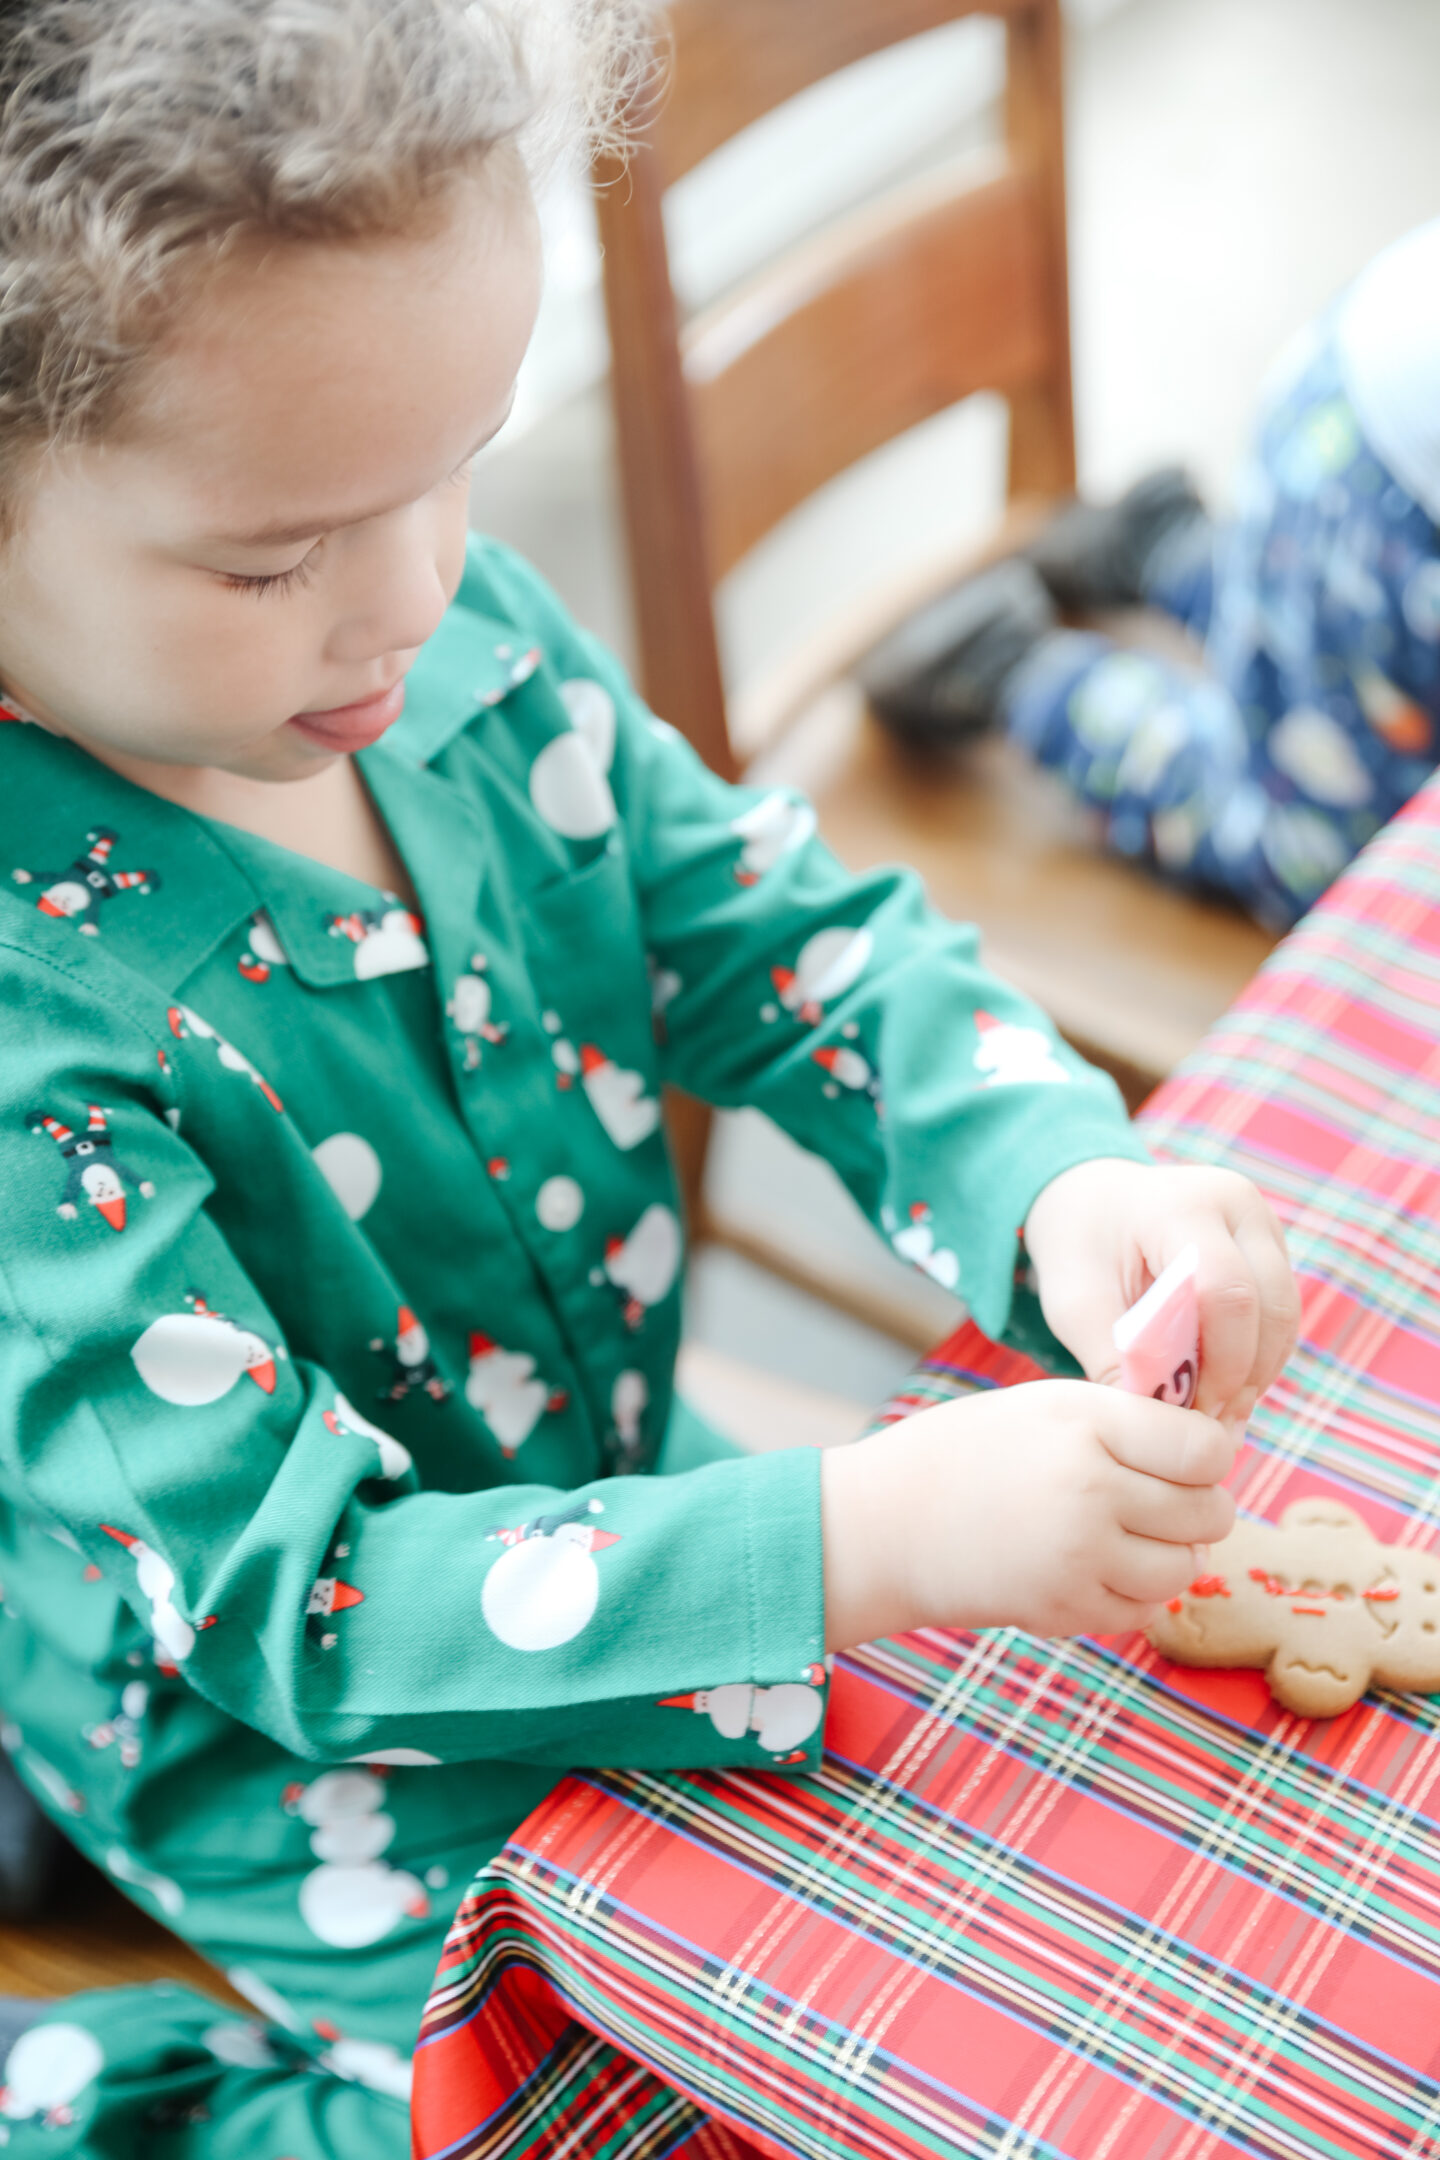 Decorate cookies with kids